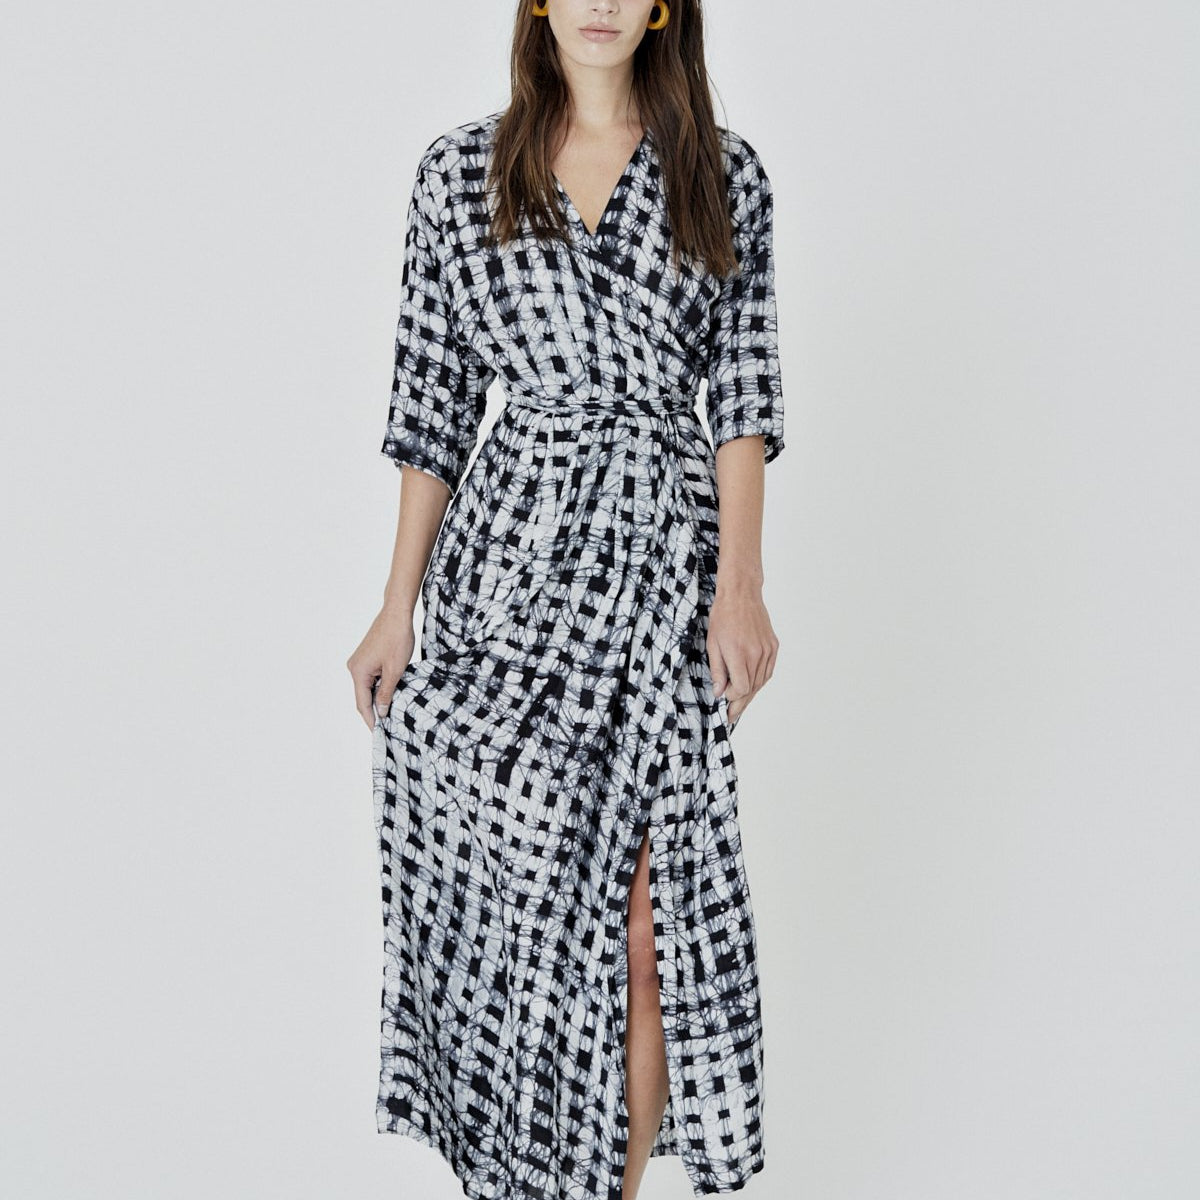 Osei Duro Letsa Wrap Dress